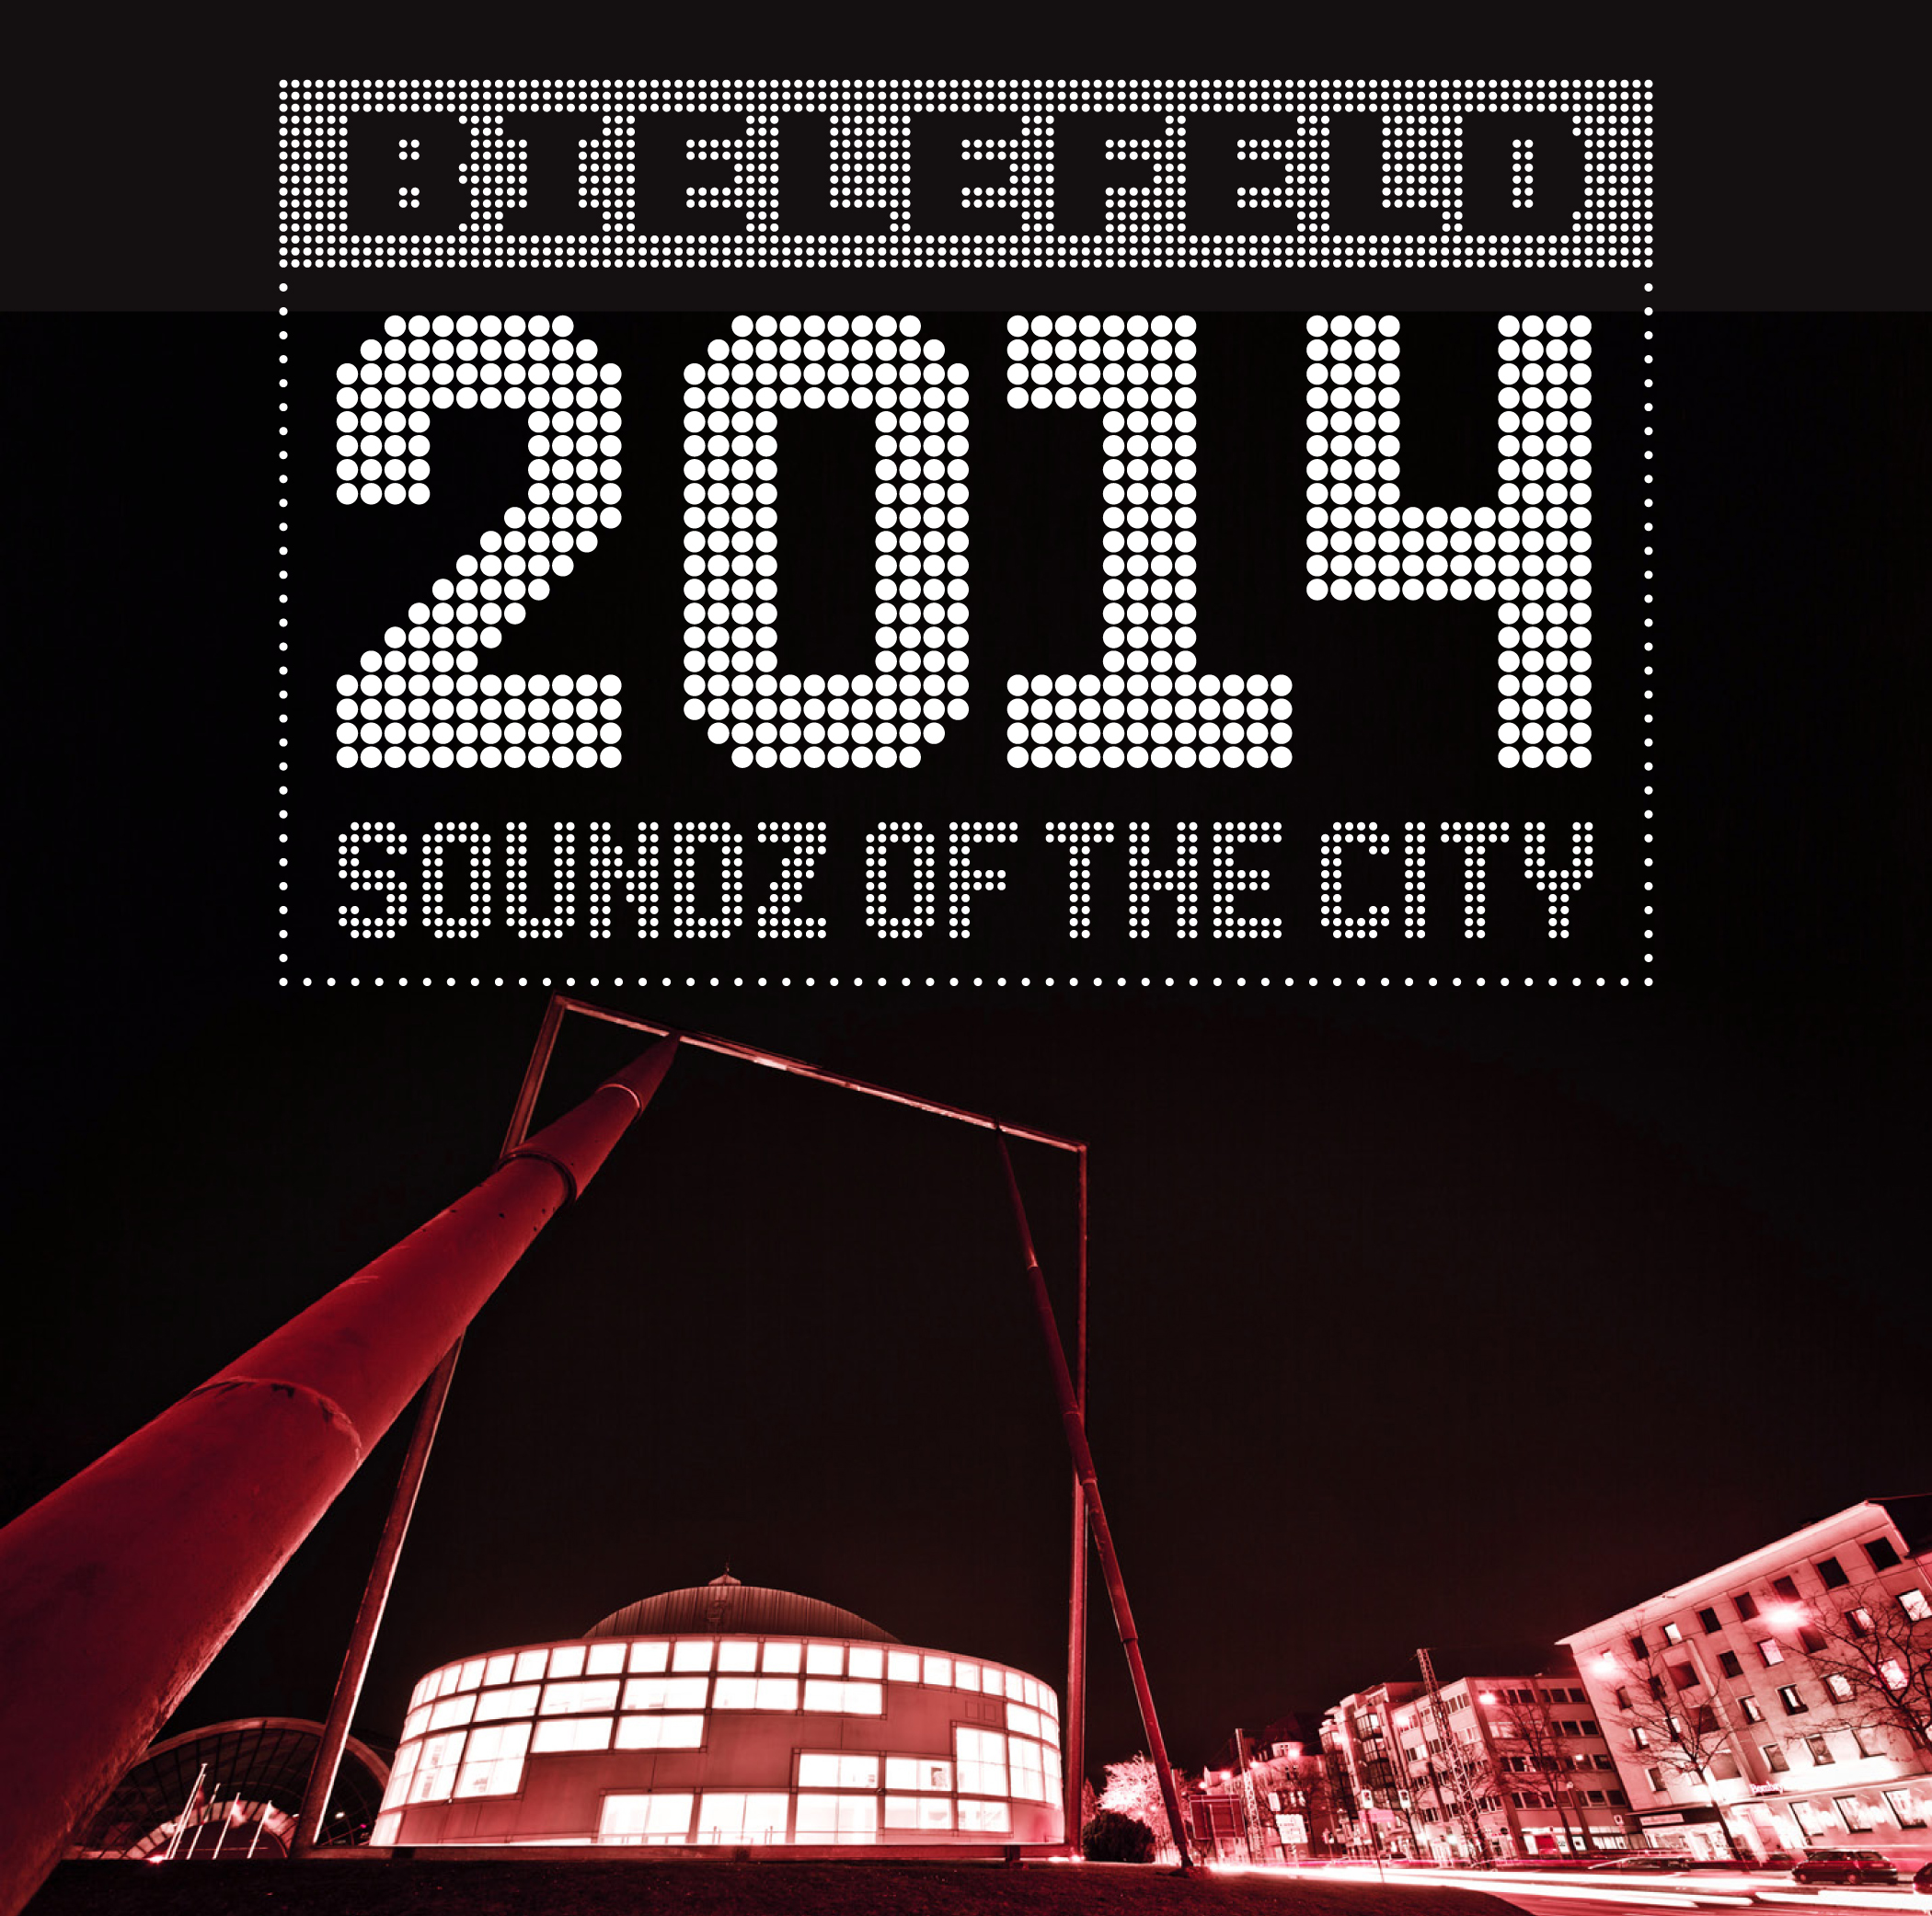 CD: Soundz of the City 2014